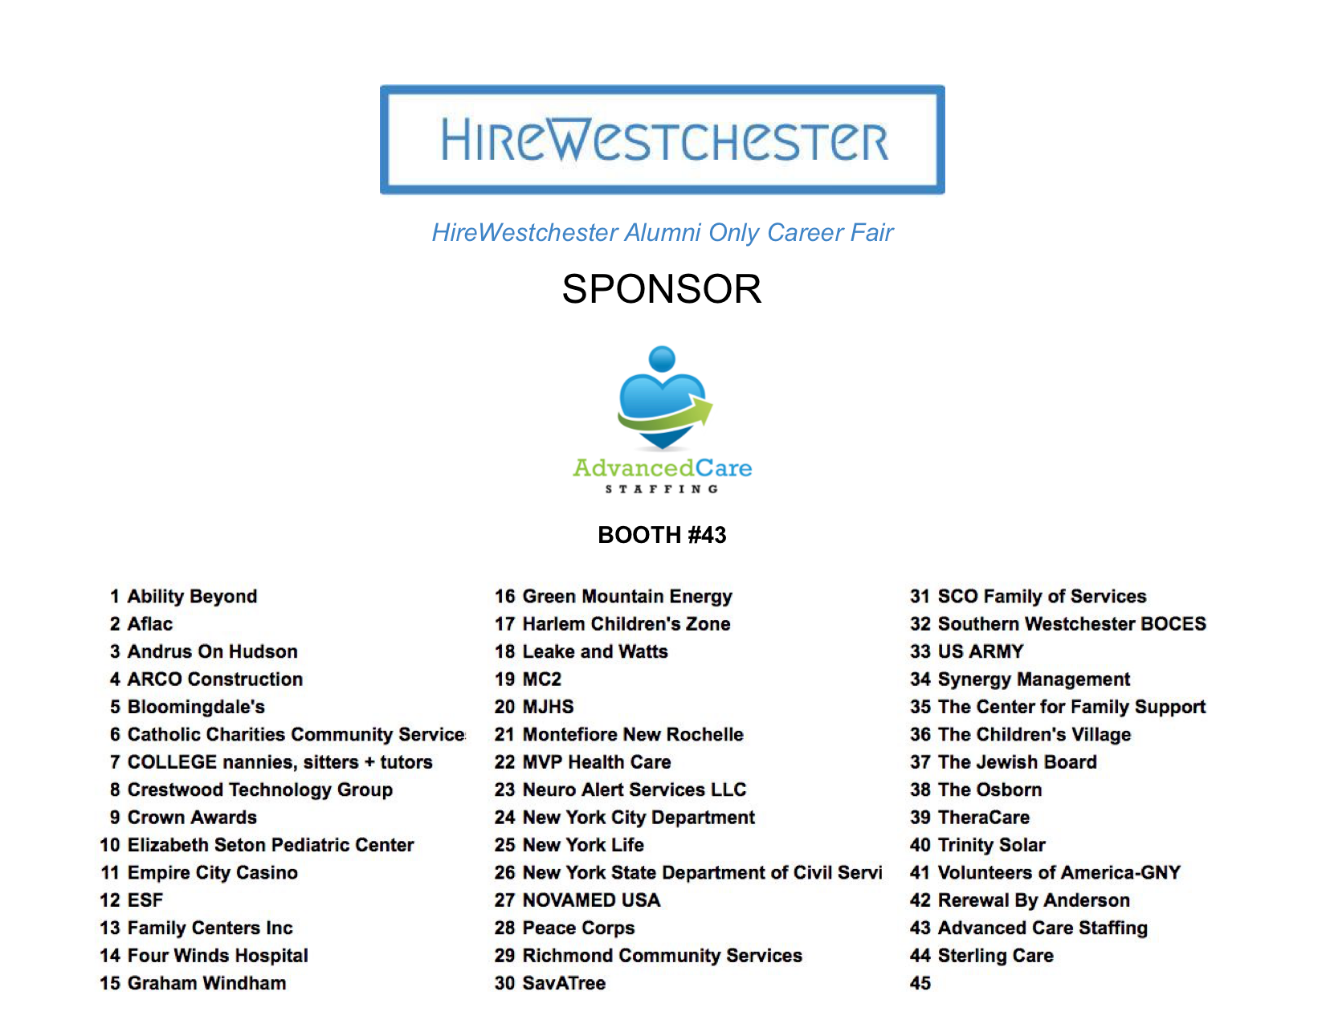 Past Exhibitors | HireWestchester 2019 Multi-School Alumni